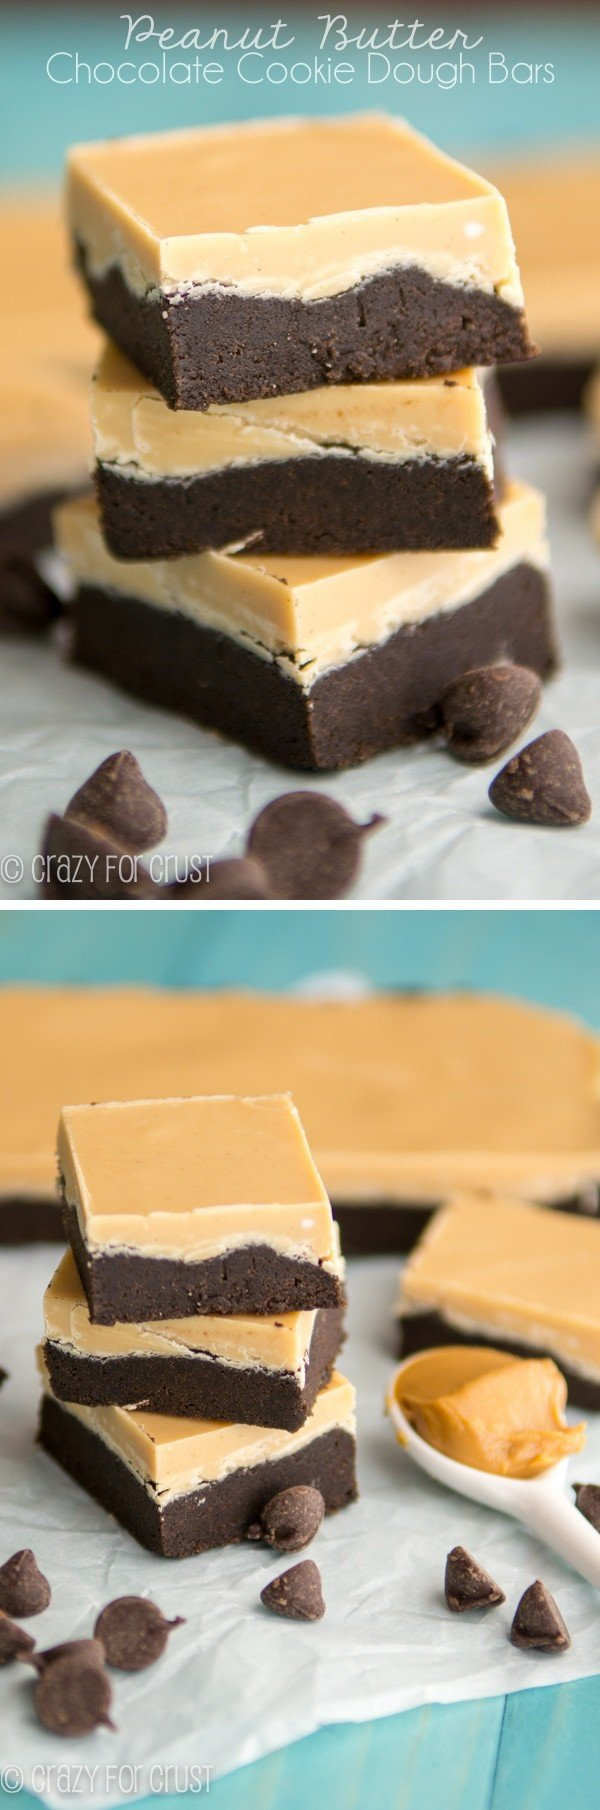 Peanut Butter Chocolate Cookie Dough Bars | crazyforcrust.com | Egg-less chocolate cookie dough pressed into a pan and topped with peanut butter!